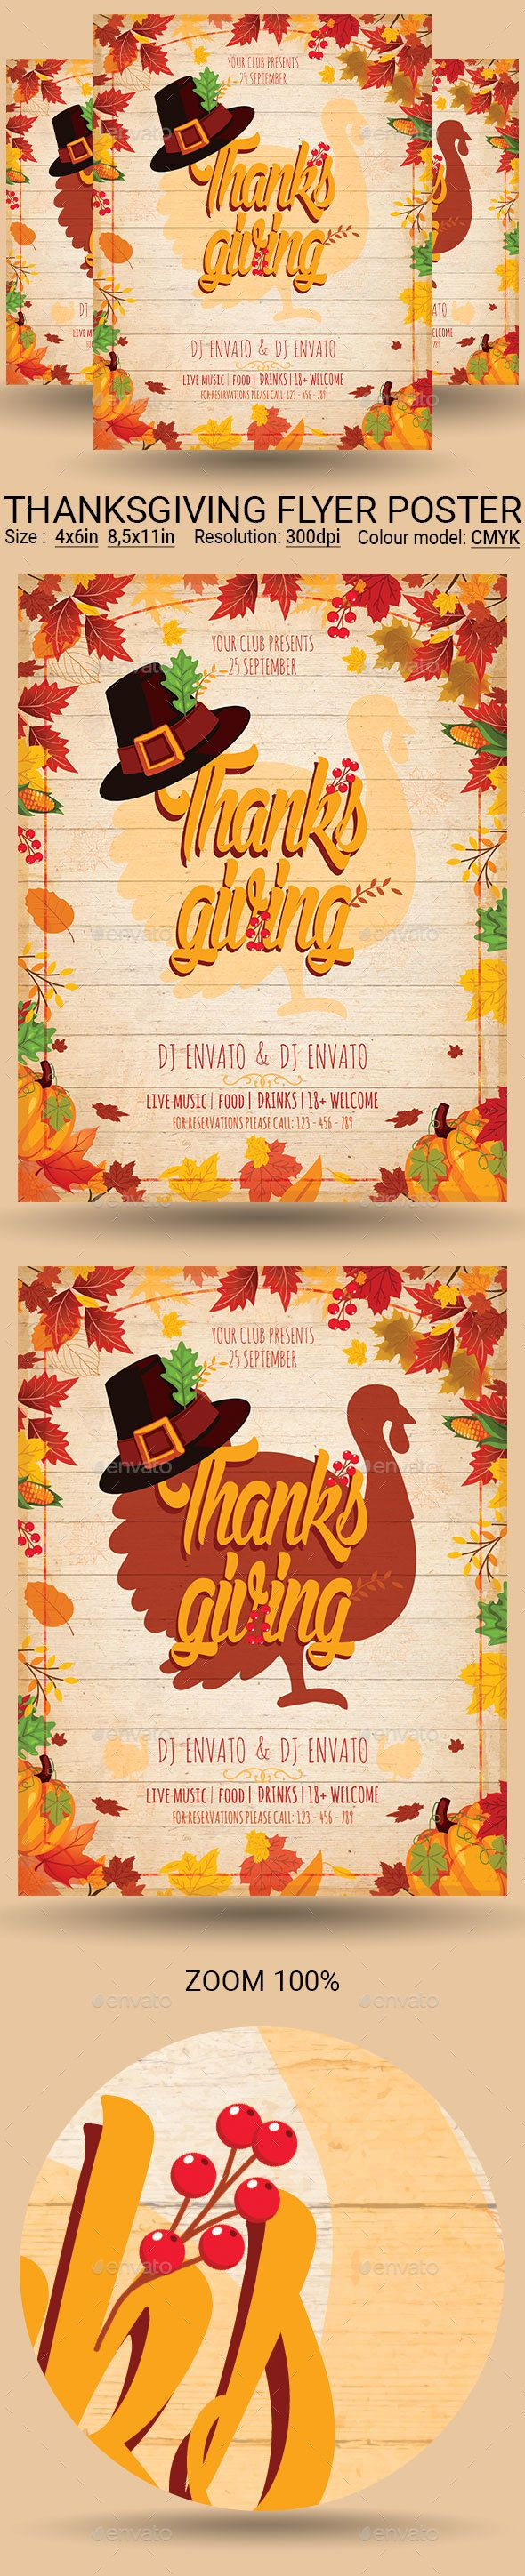 Thanksgiving Flyer Poster Template Psd Download Flyer Templates